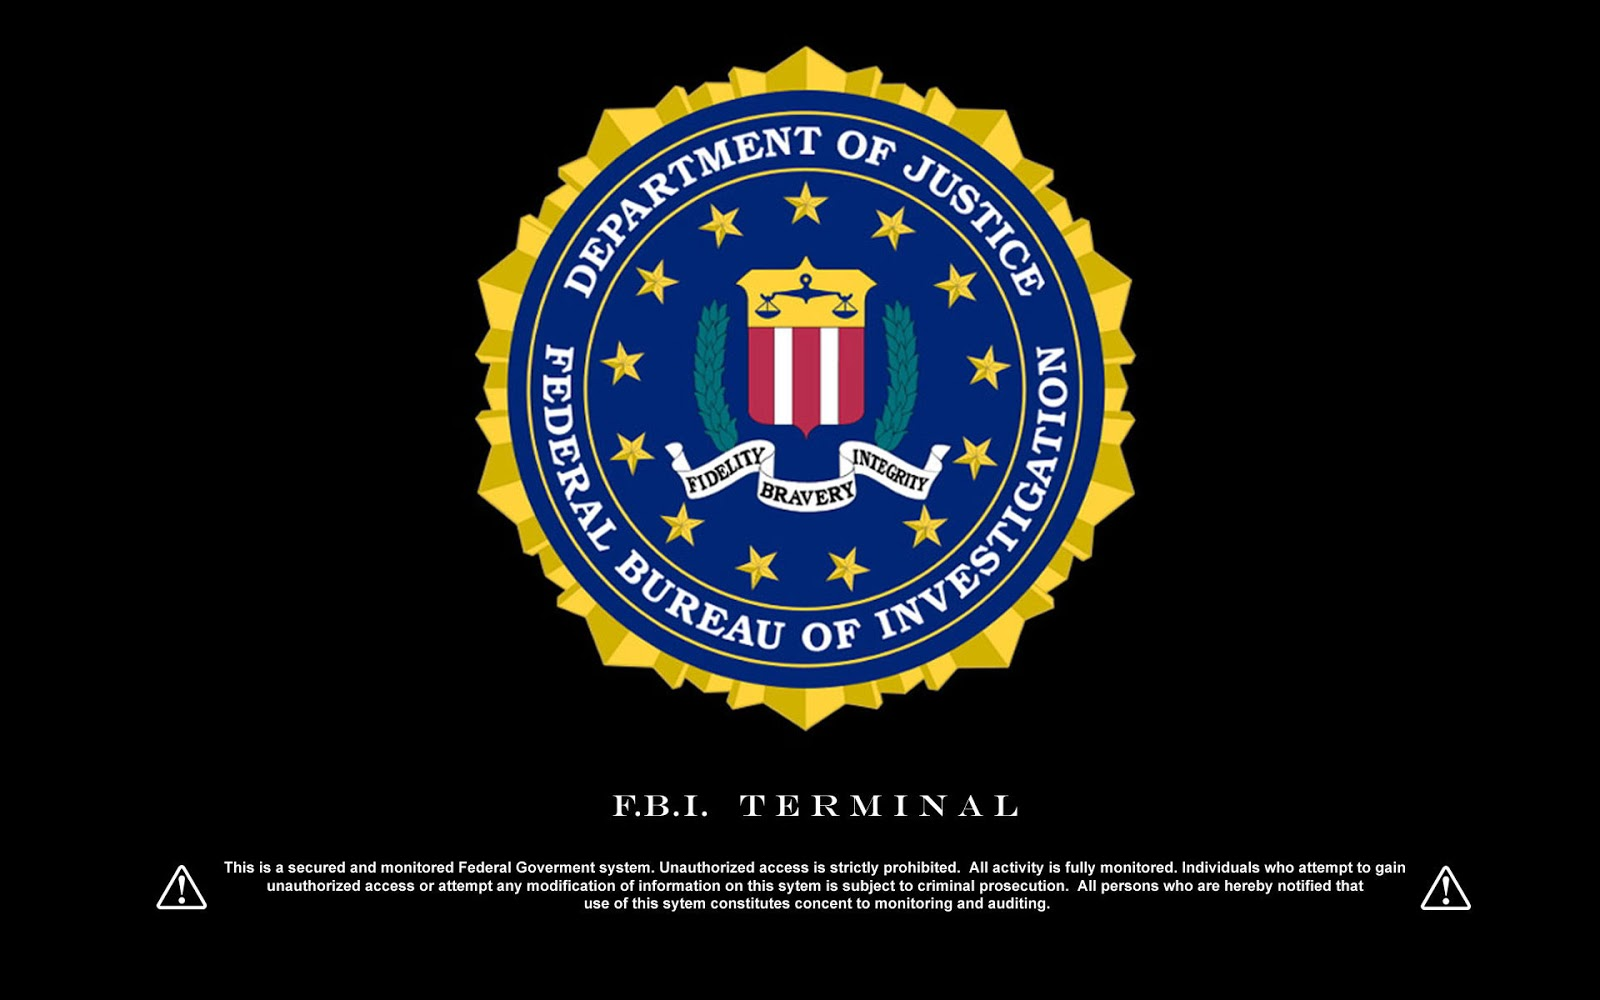 http://2.bp.blogspot.com/-uKq7-ZwyuKk/UKsWyOijqkI/AAAAAAAAAT4/1uxsiwF0aGQ/s1600/FBI+Logo+with+Terminal+warning+Wallpapers.jpg